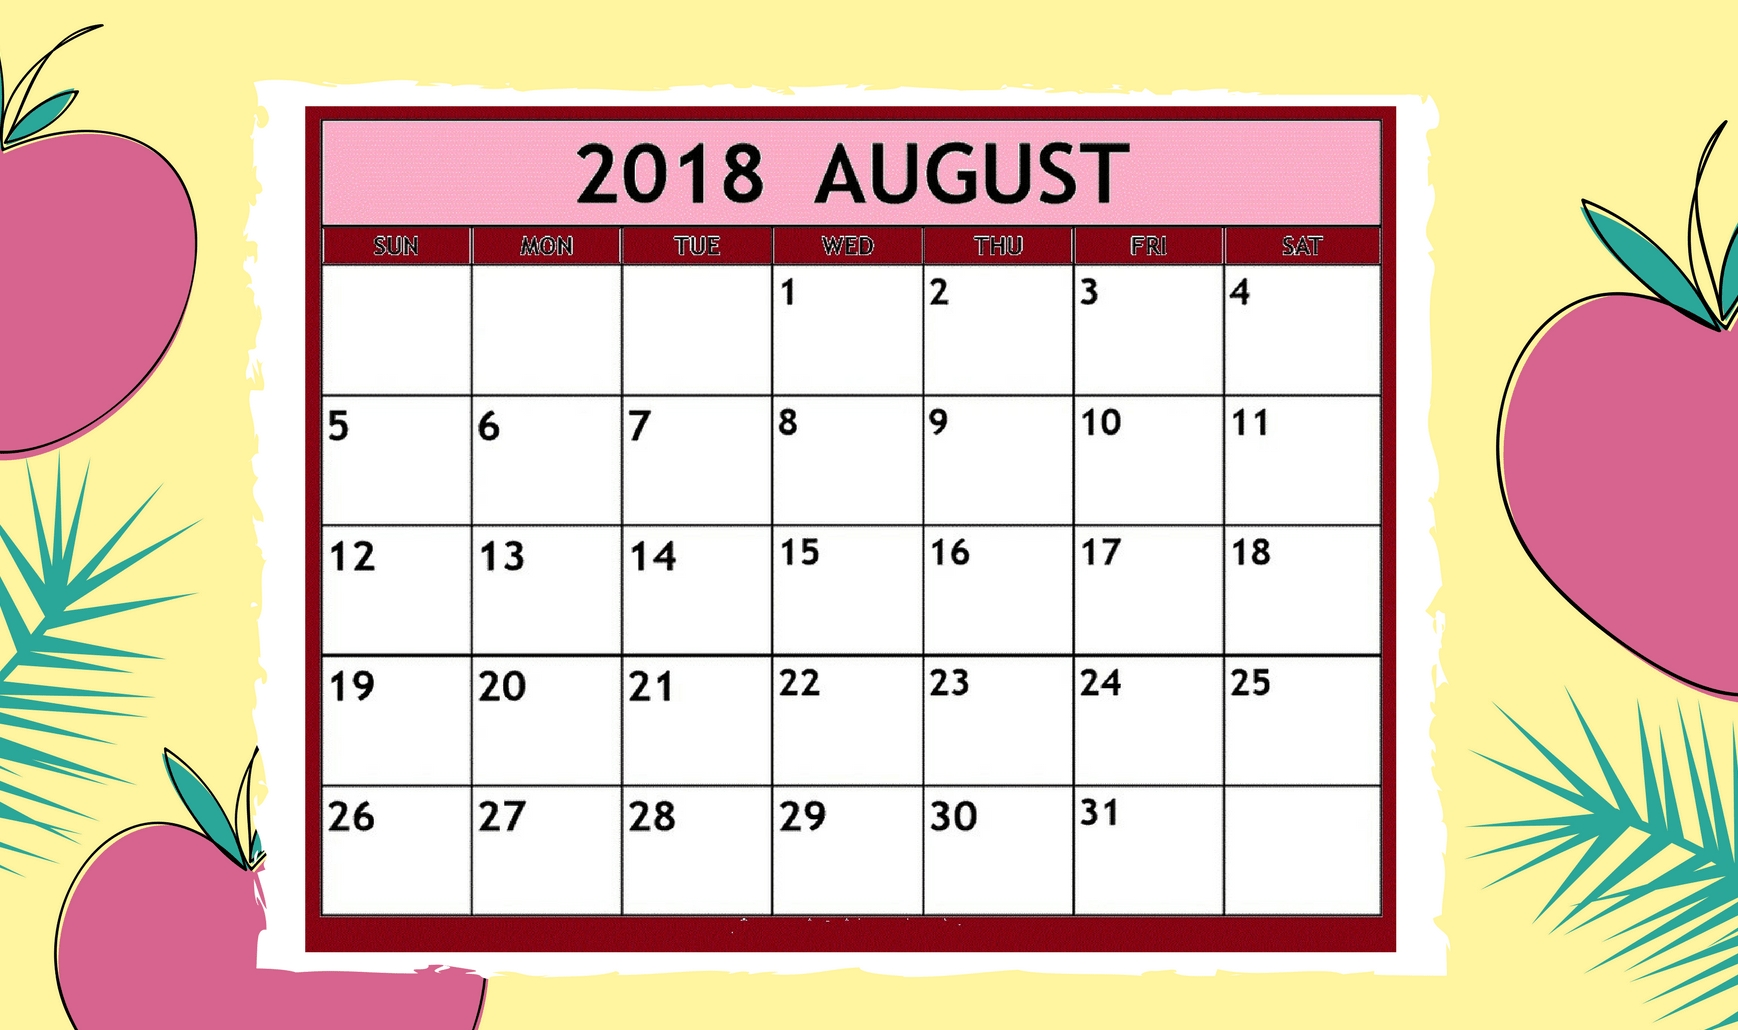 cute printable calendar august 2018 letter calendar worksheets Cute Printable Calendar For August 2018 erdferdf